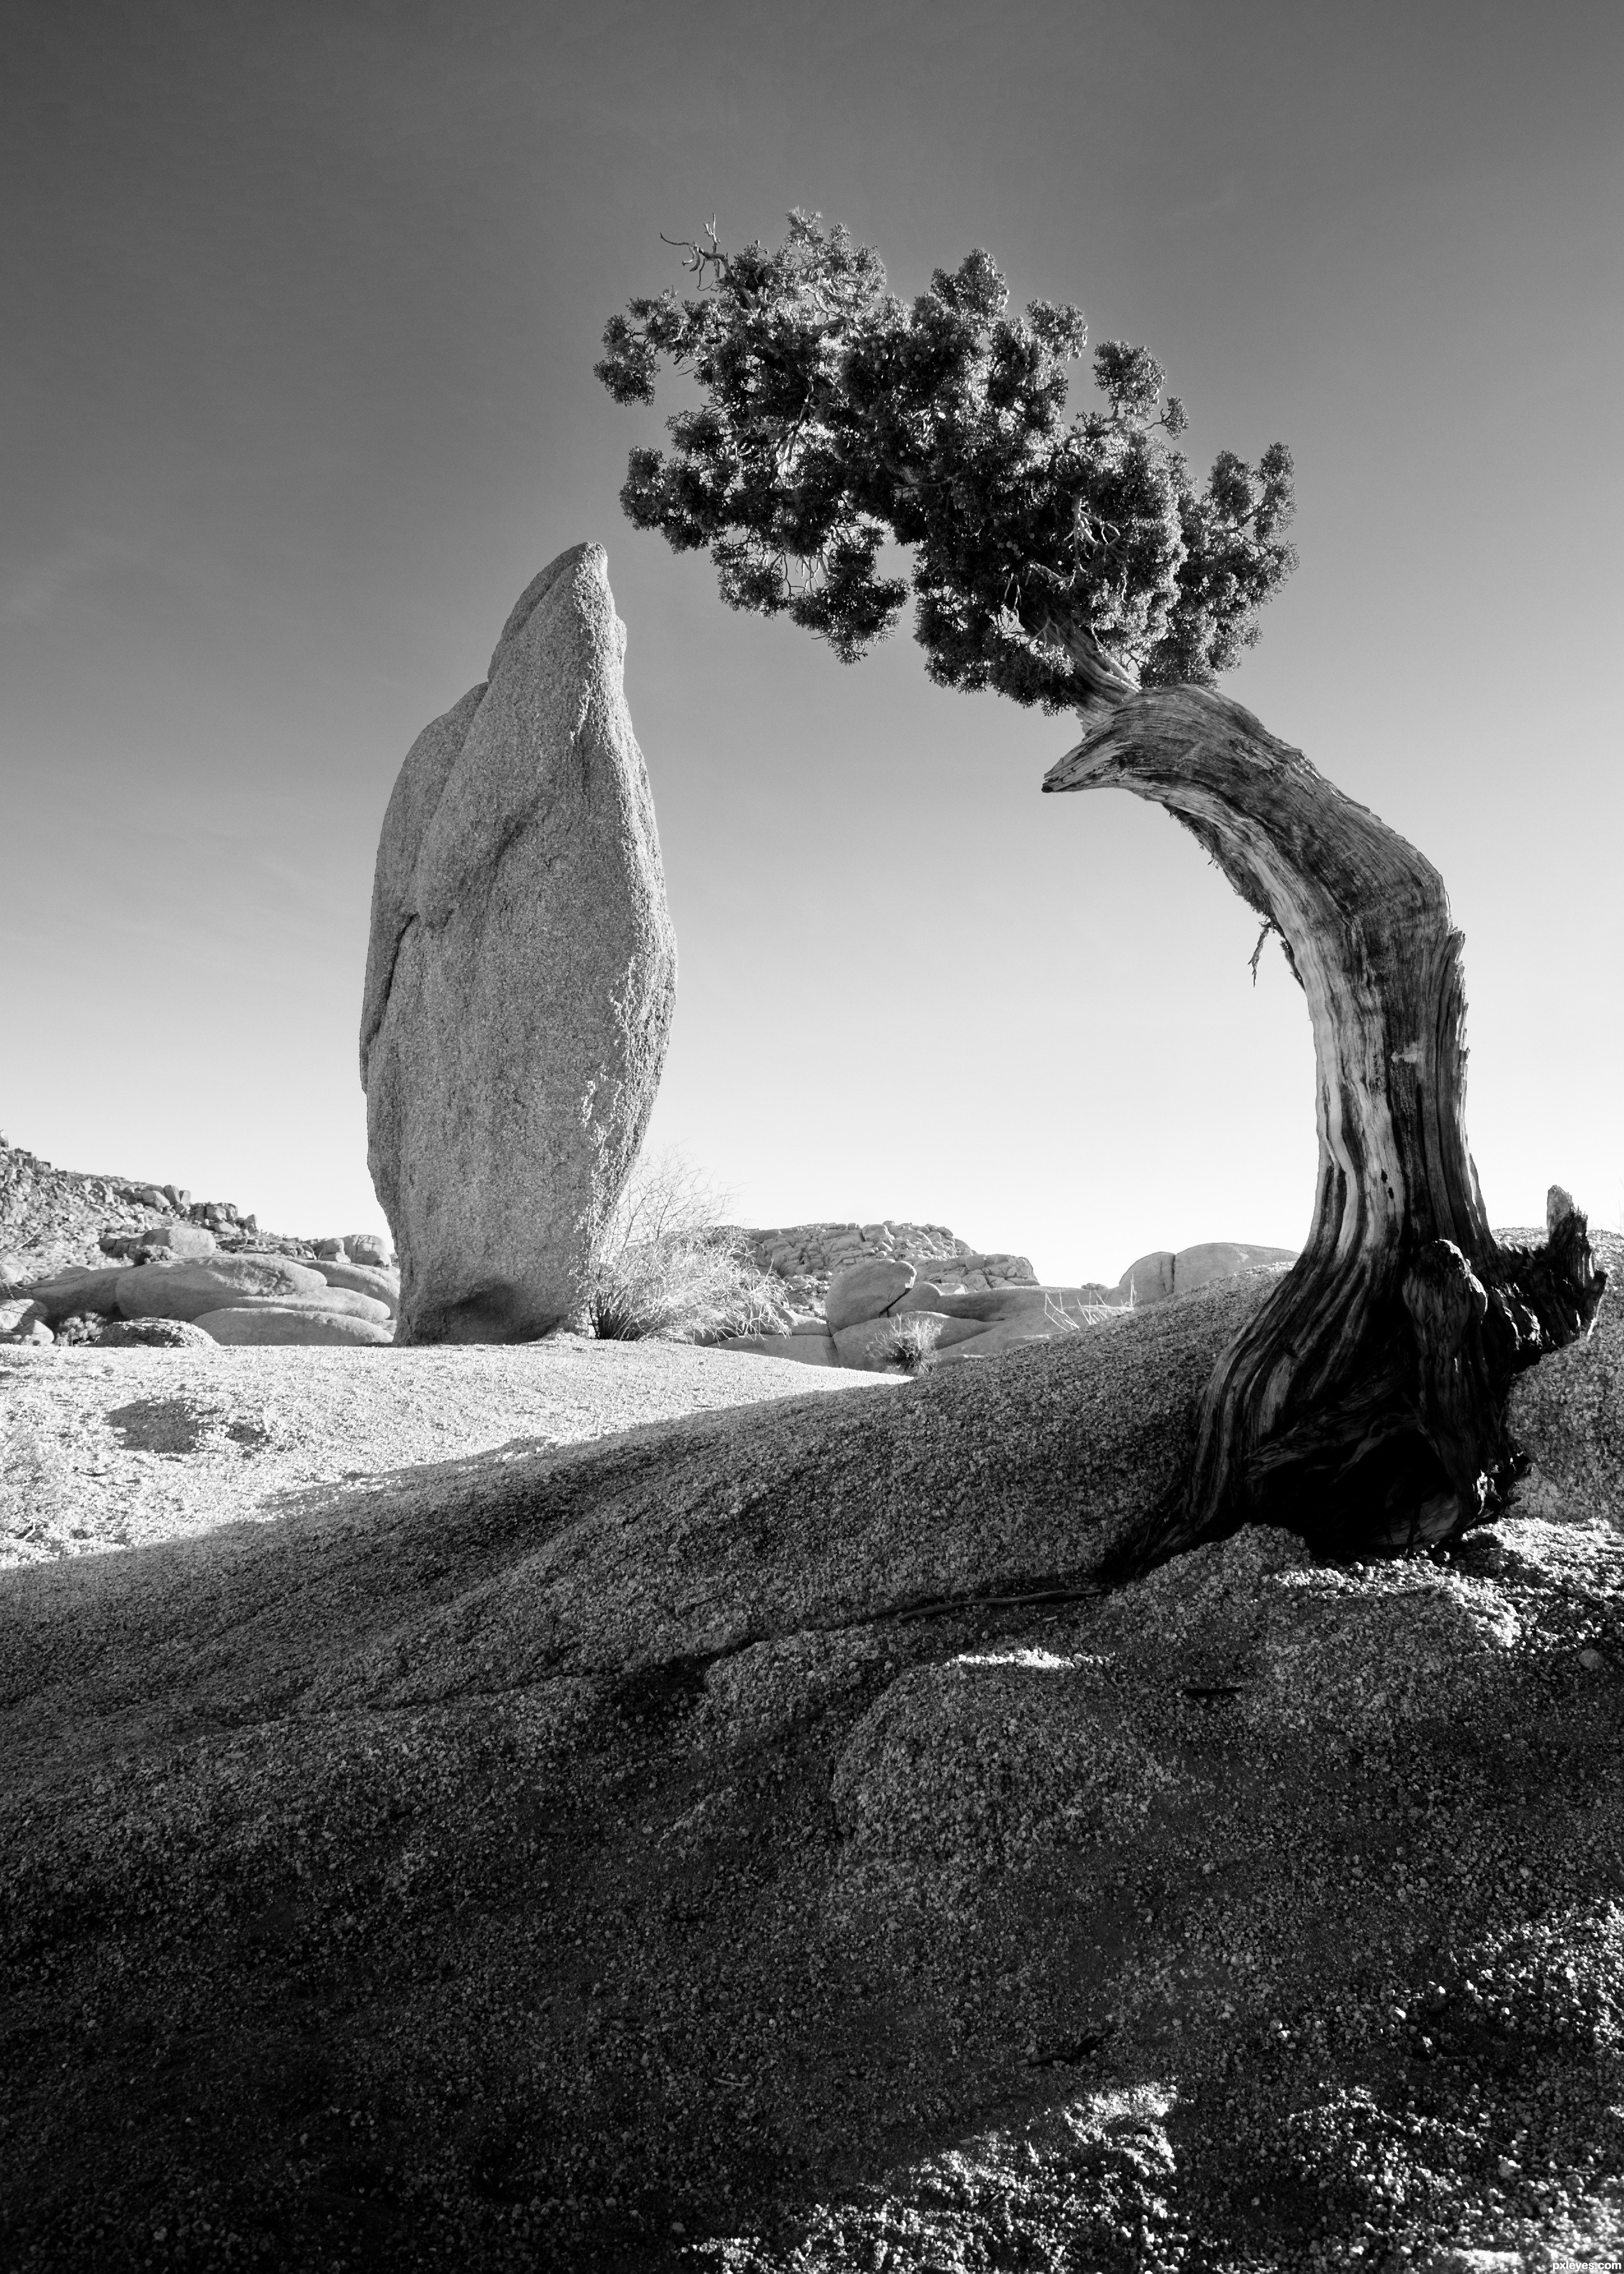 Ansel adams bw 3 photography contest 37 entries